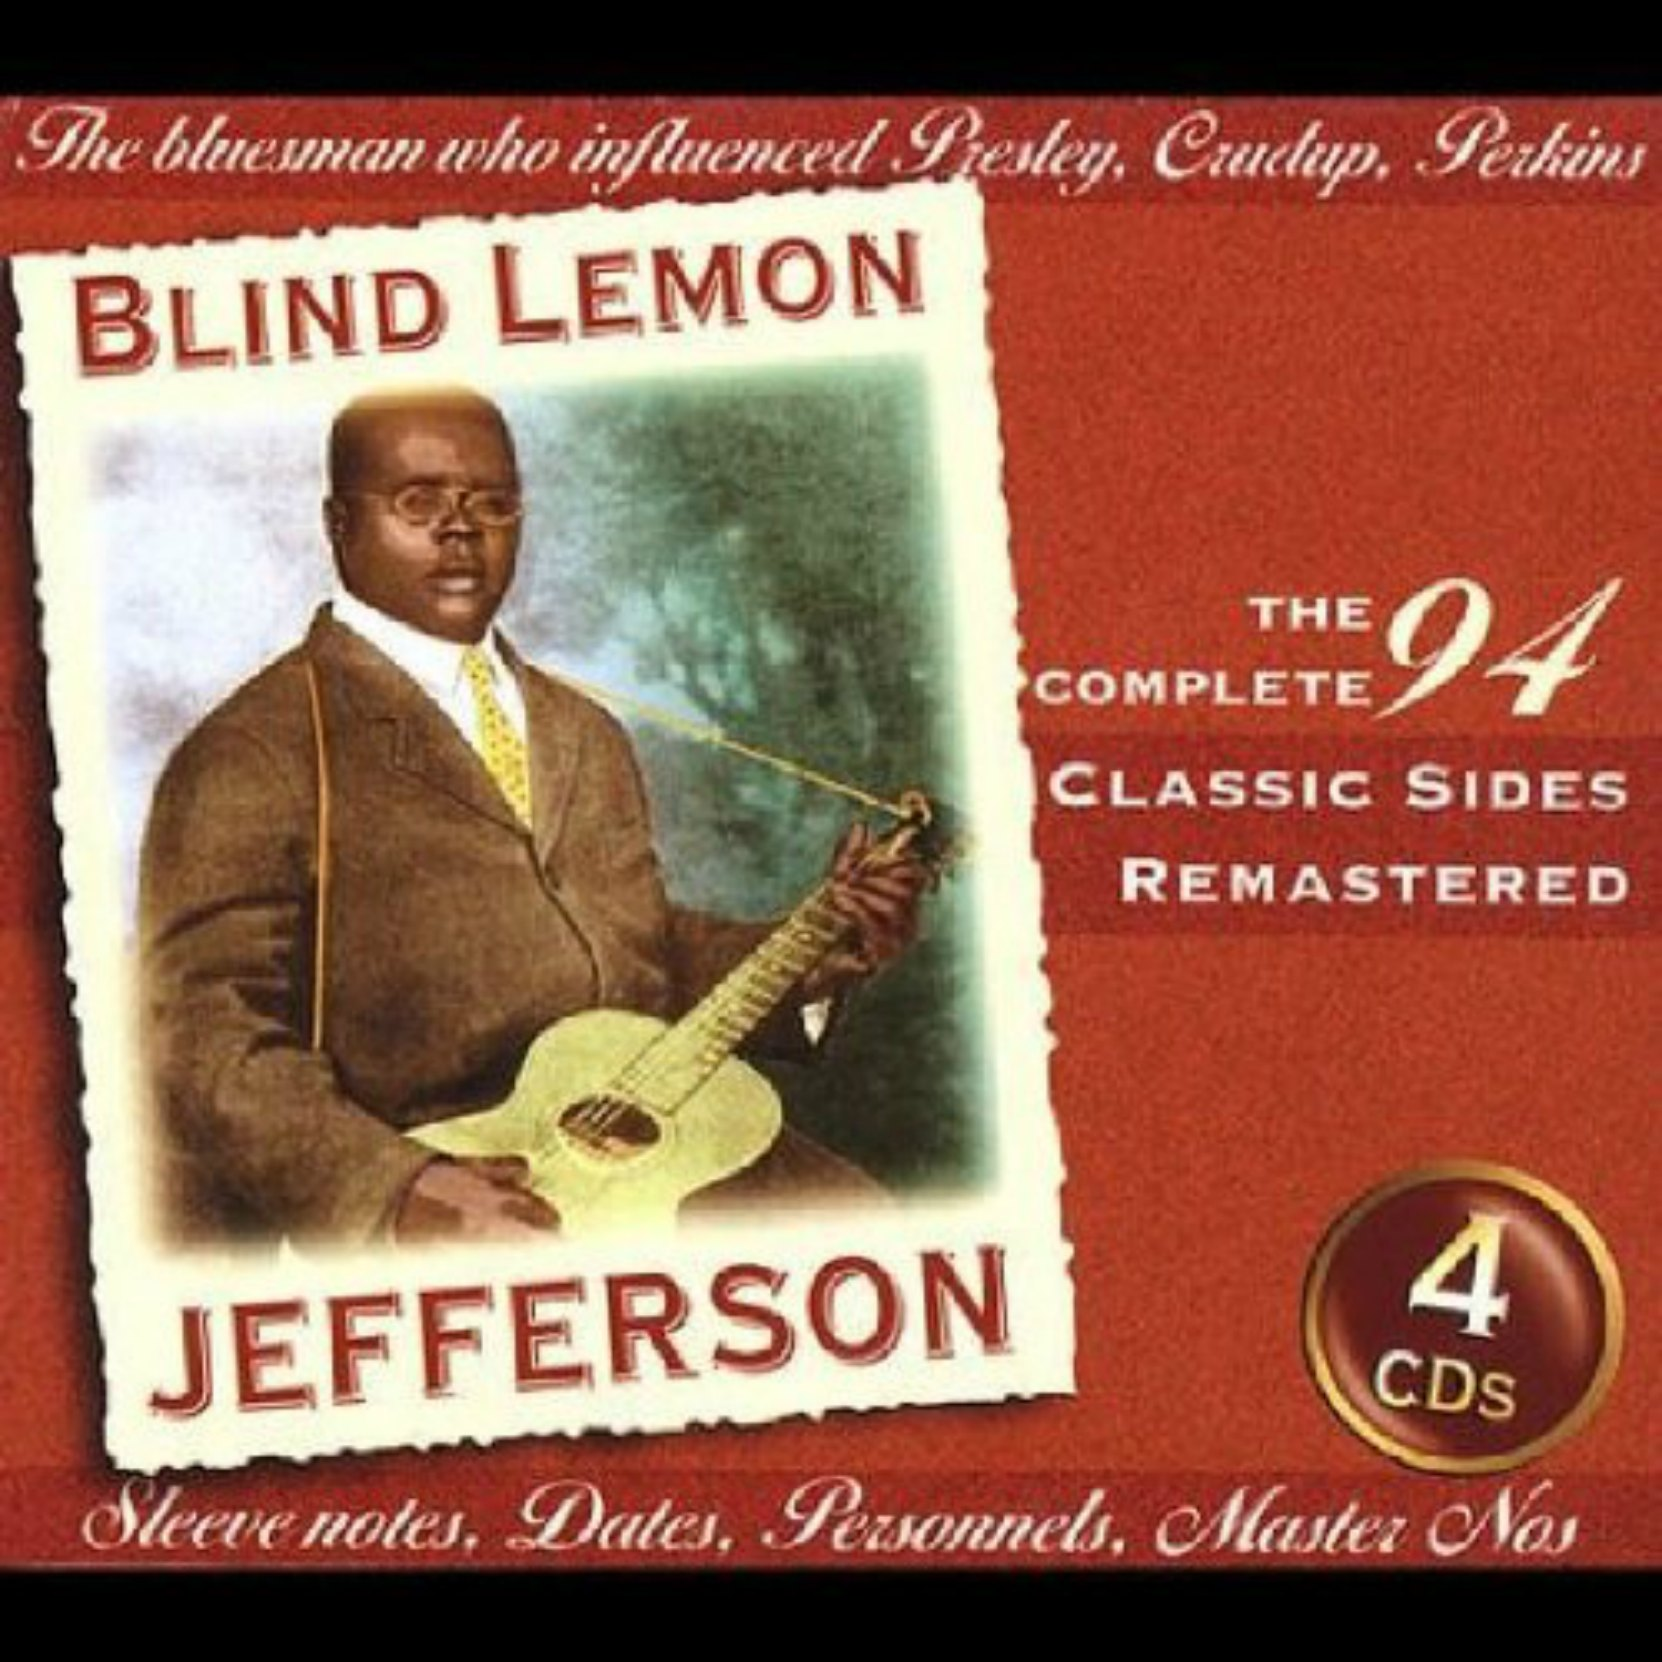 CD cover, Blind Lemon Jefferson - The Complete 94 Classic Sides, a 4 CD box set on JSP Records